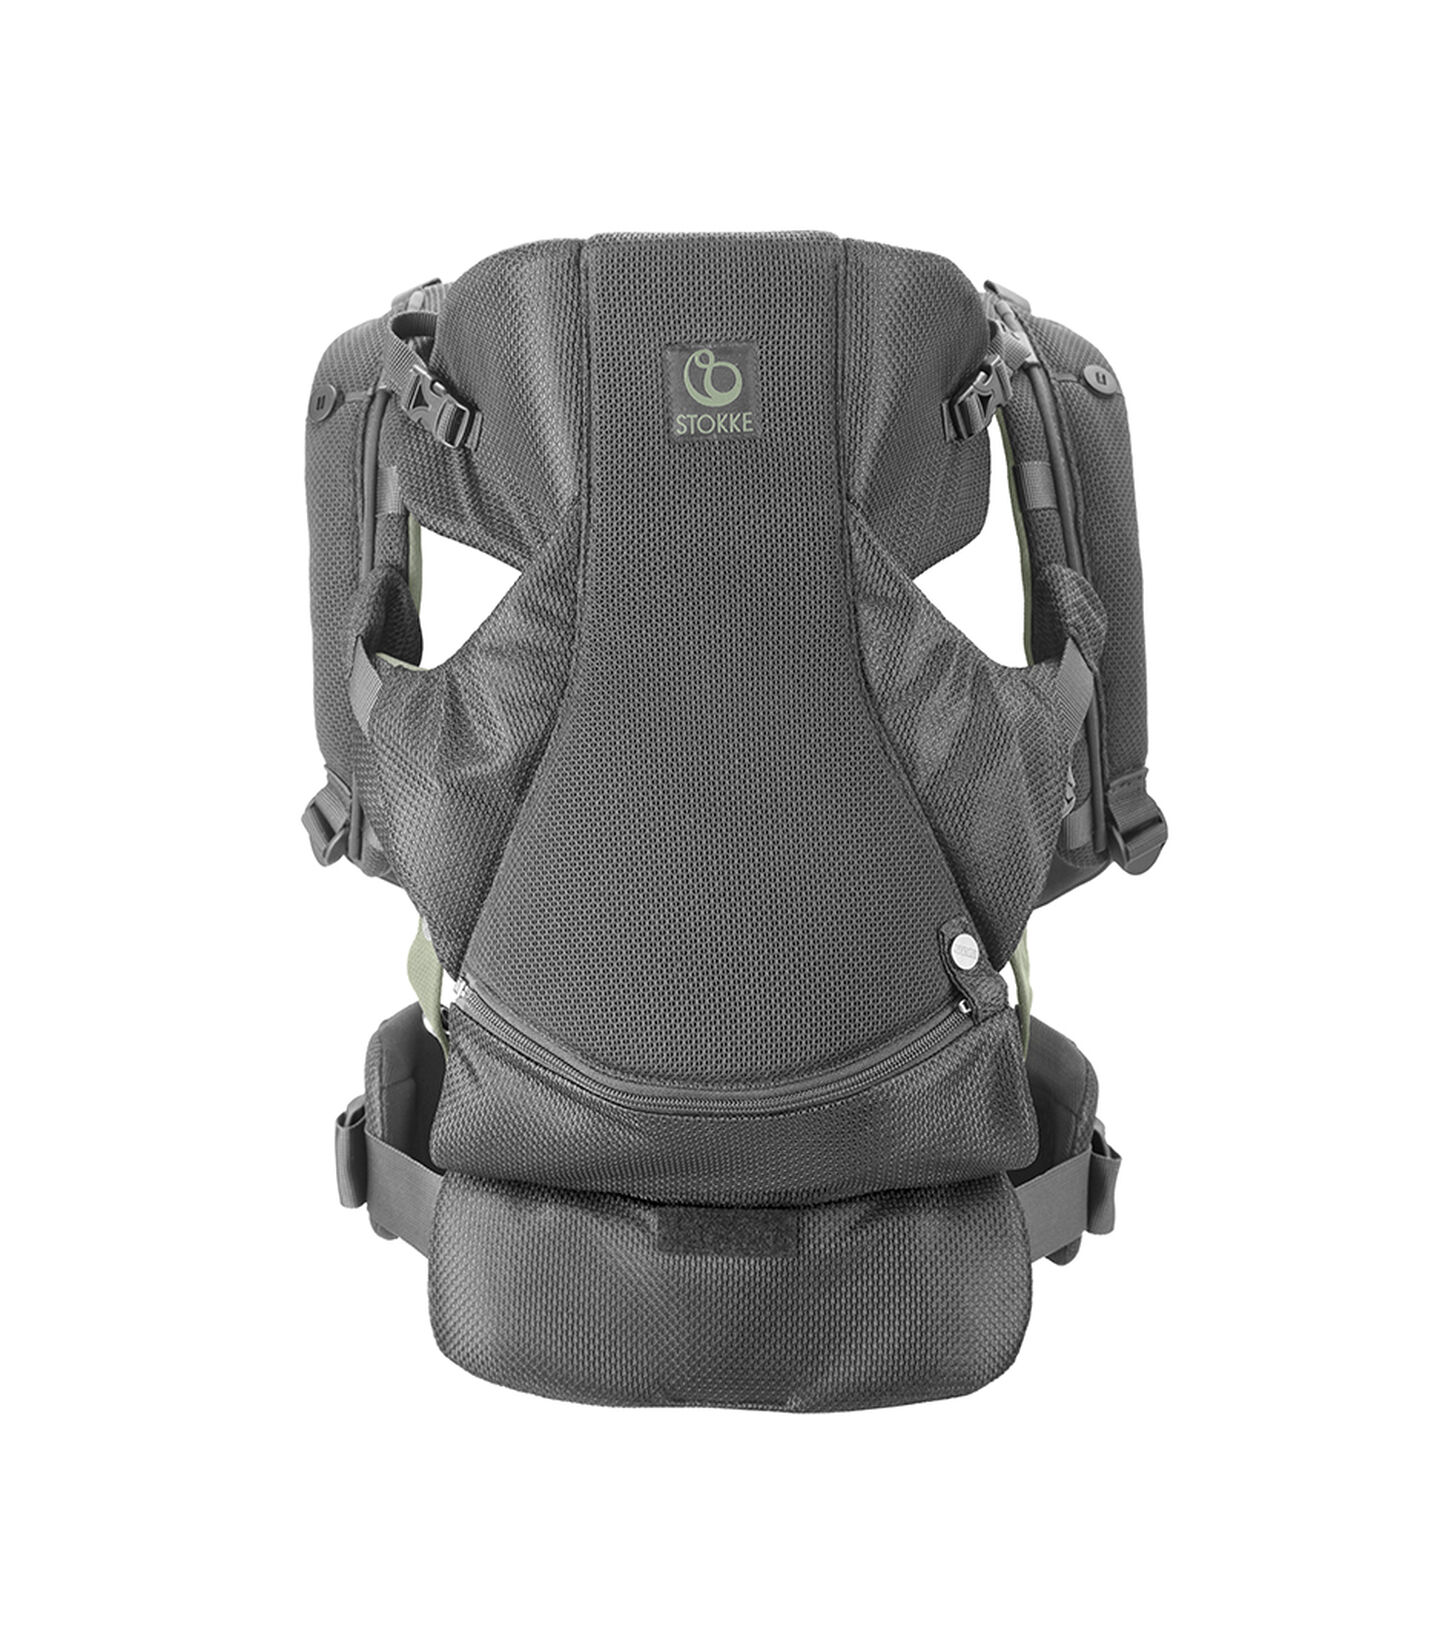 Stokke® MyCarrier™ Bauchtrage in Green Mesh, Green Mesh, mainview view 1